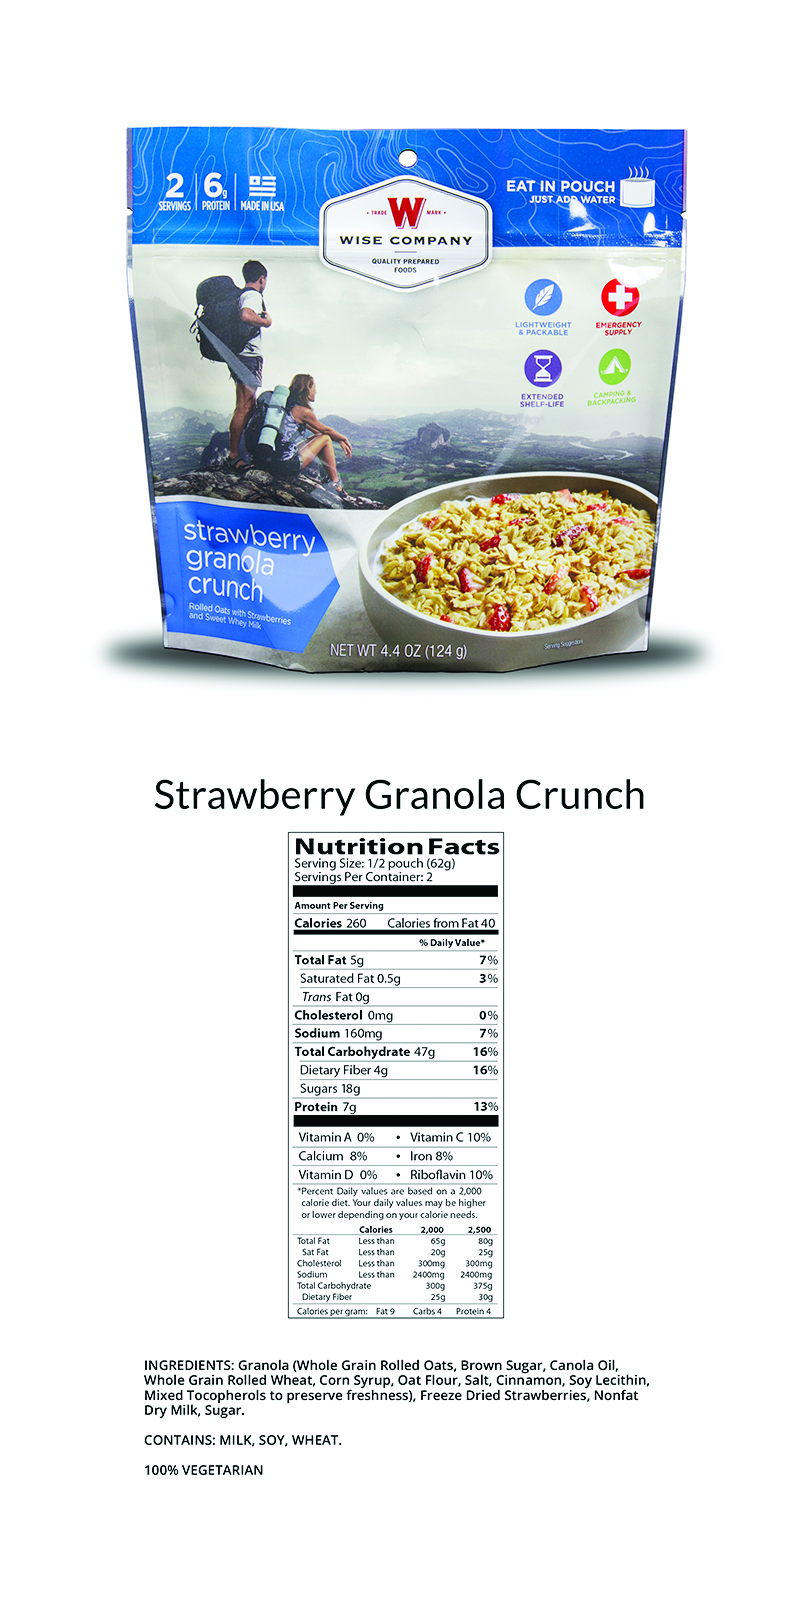 Strawberry Granola Crunch